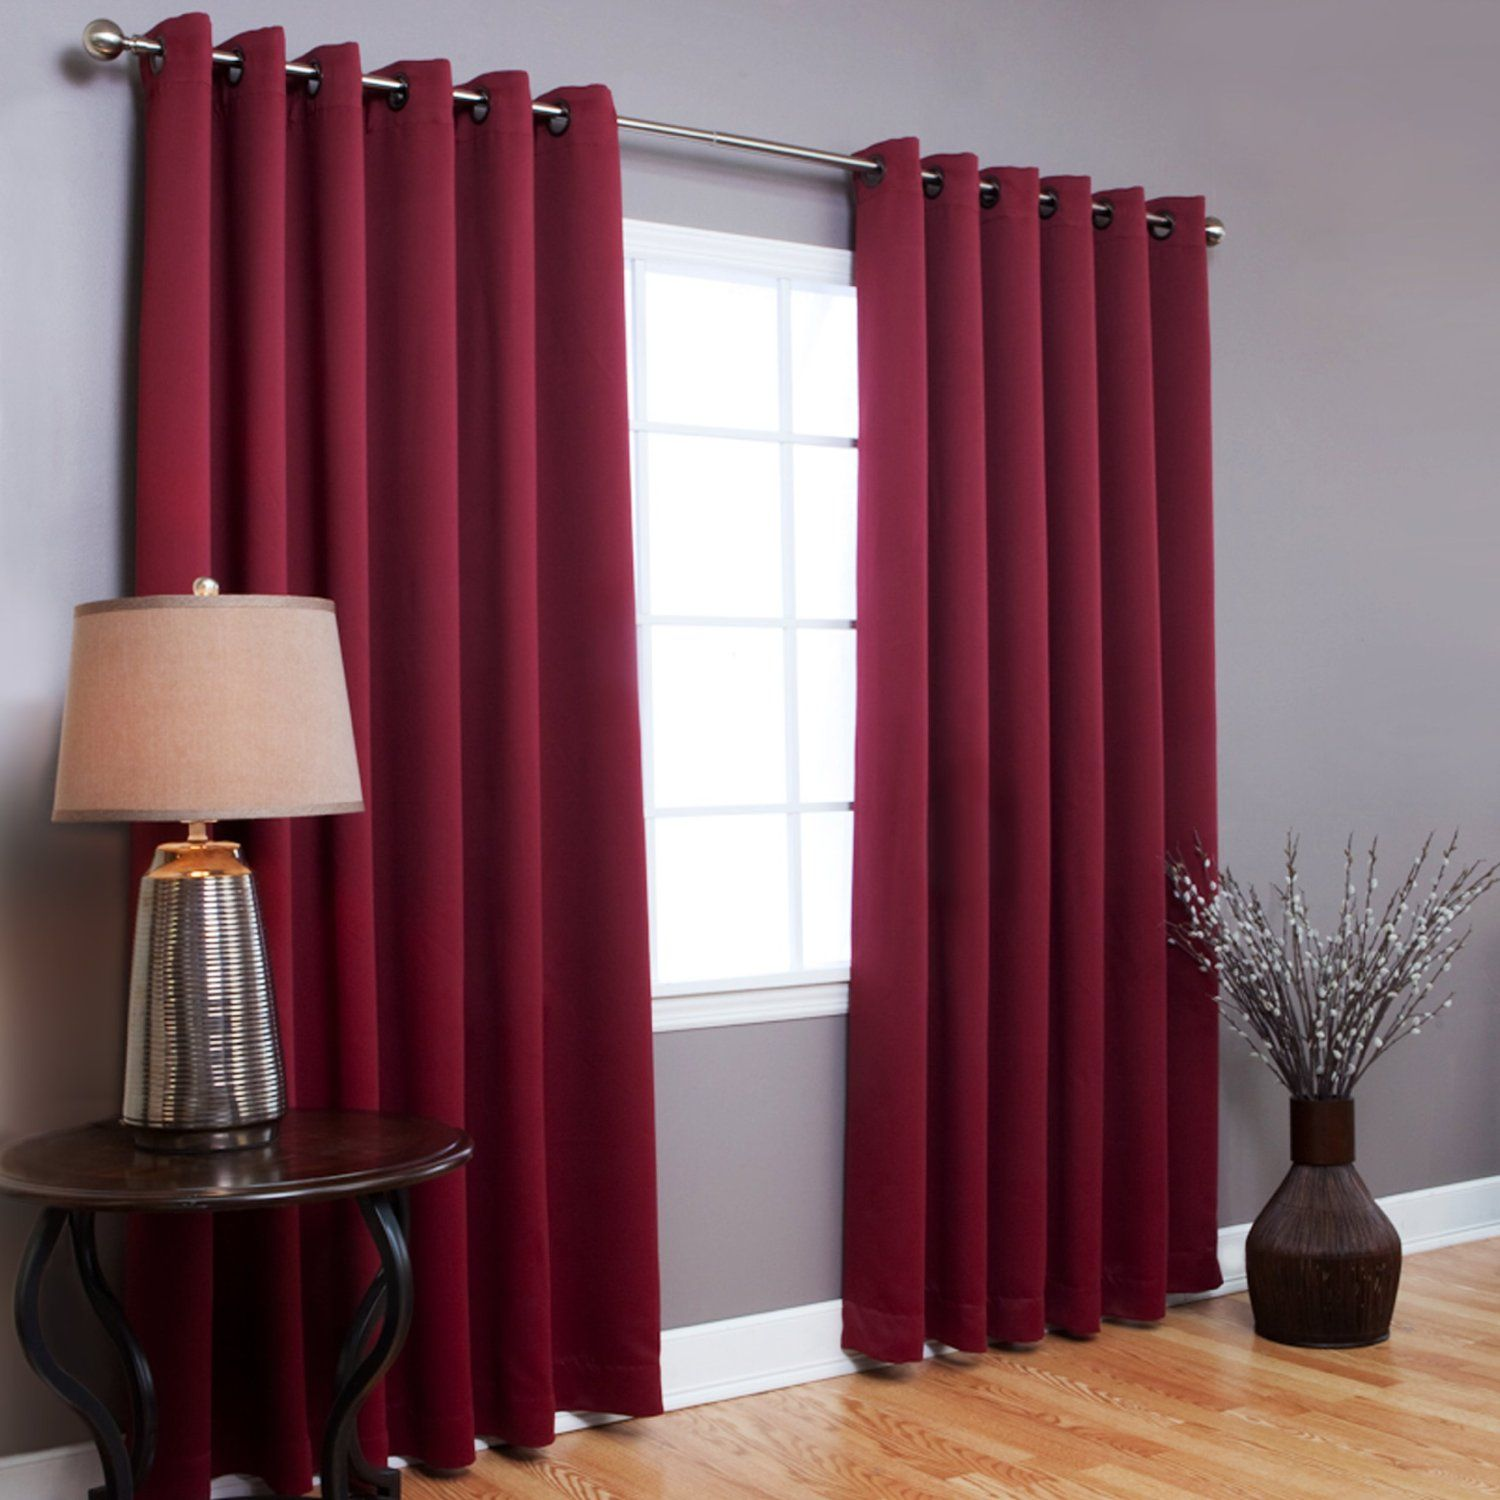 Red Curtains For Our Lounge Room Home Sweet Home Pinterest